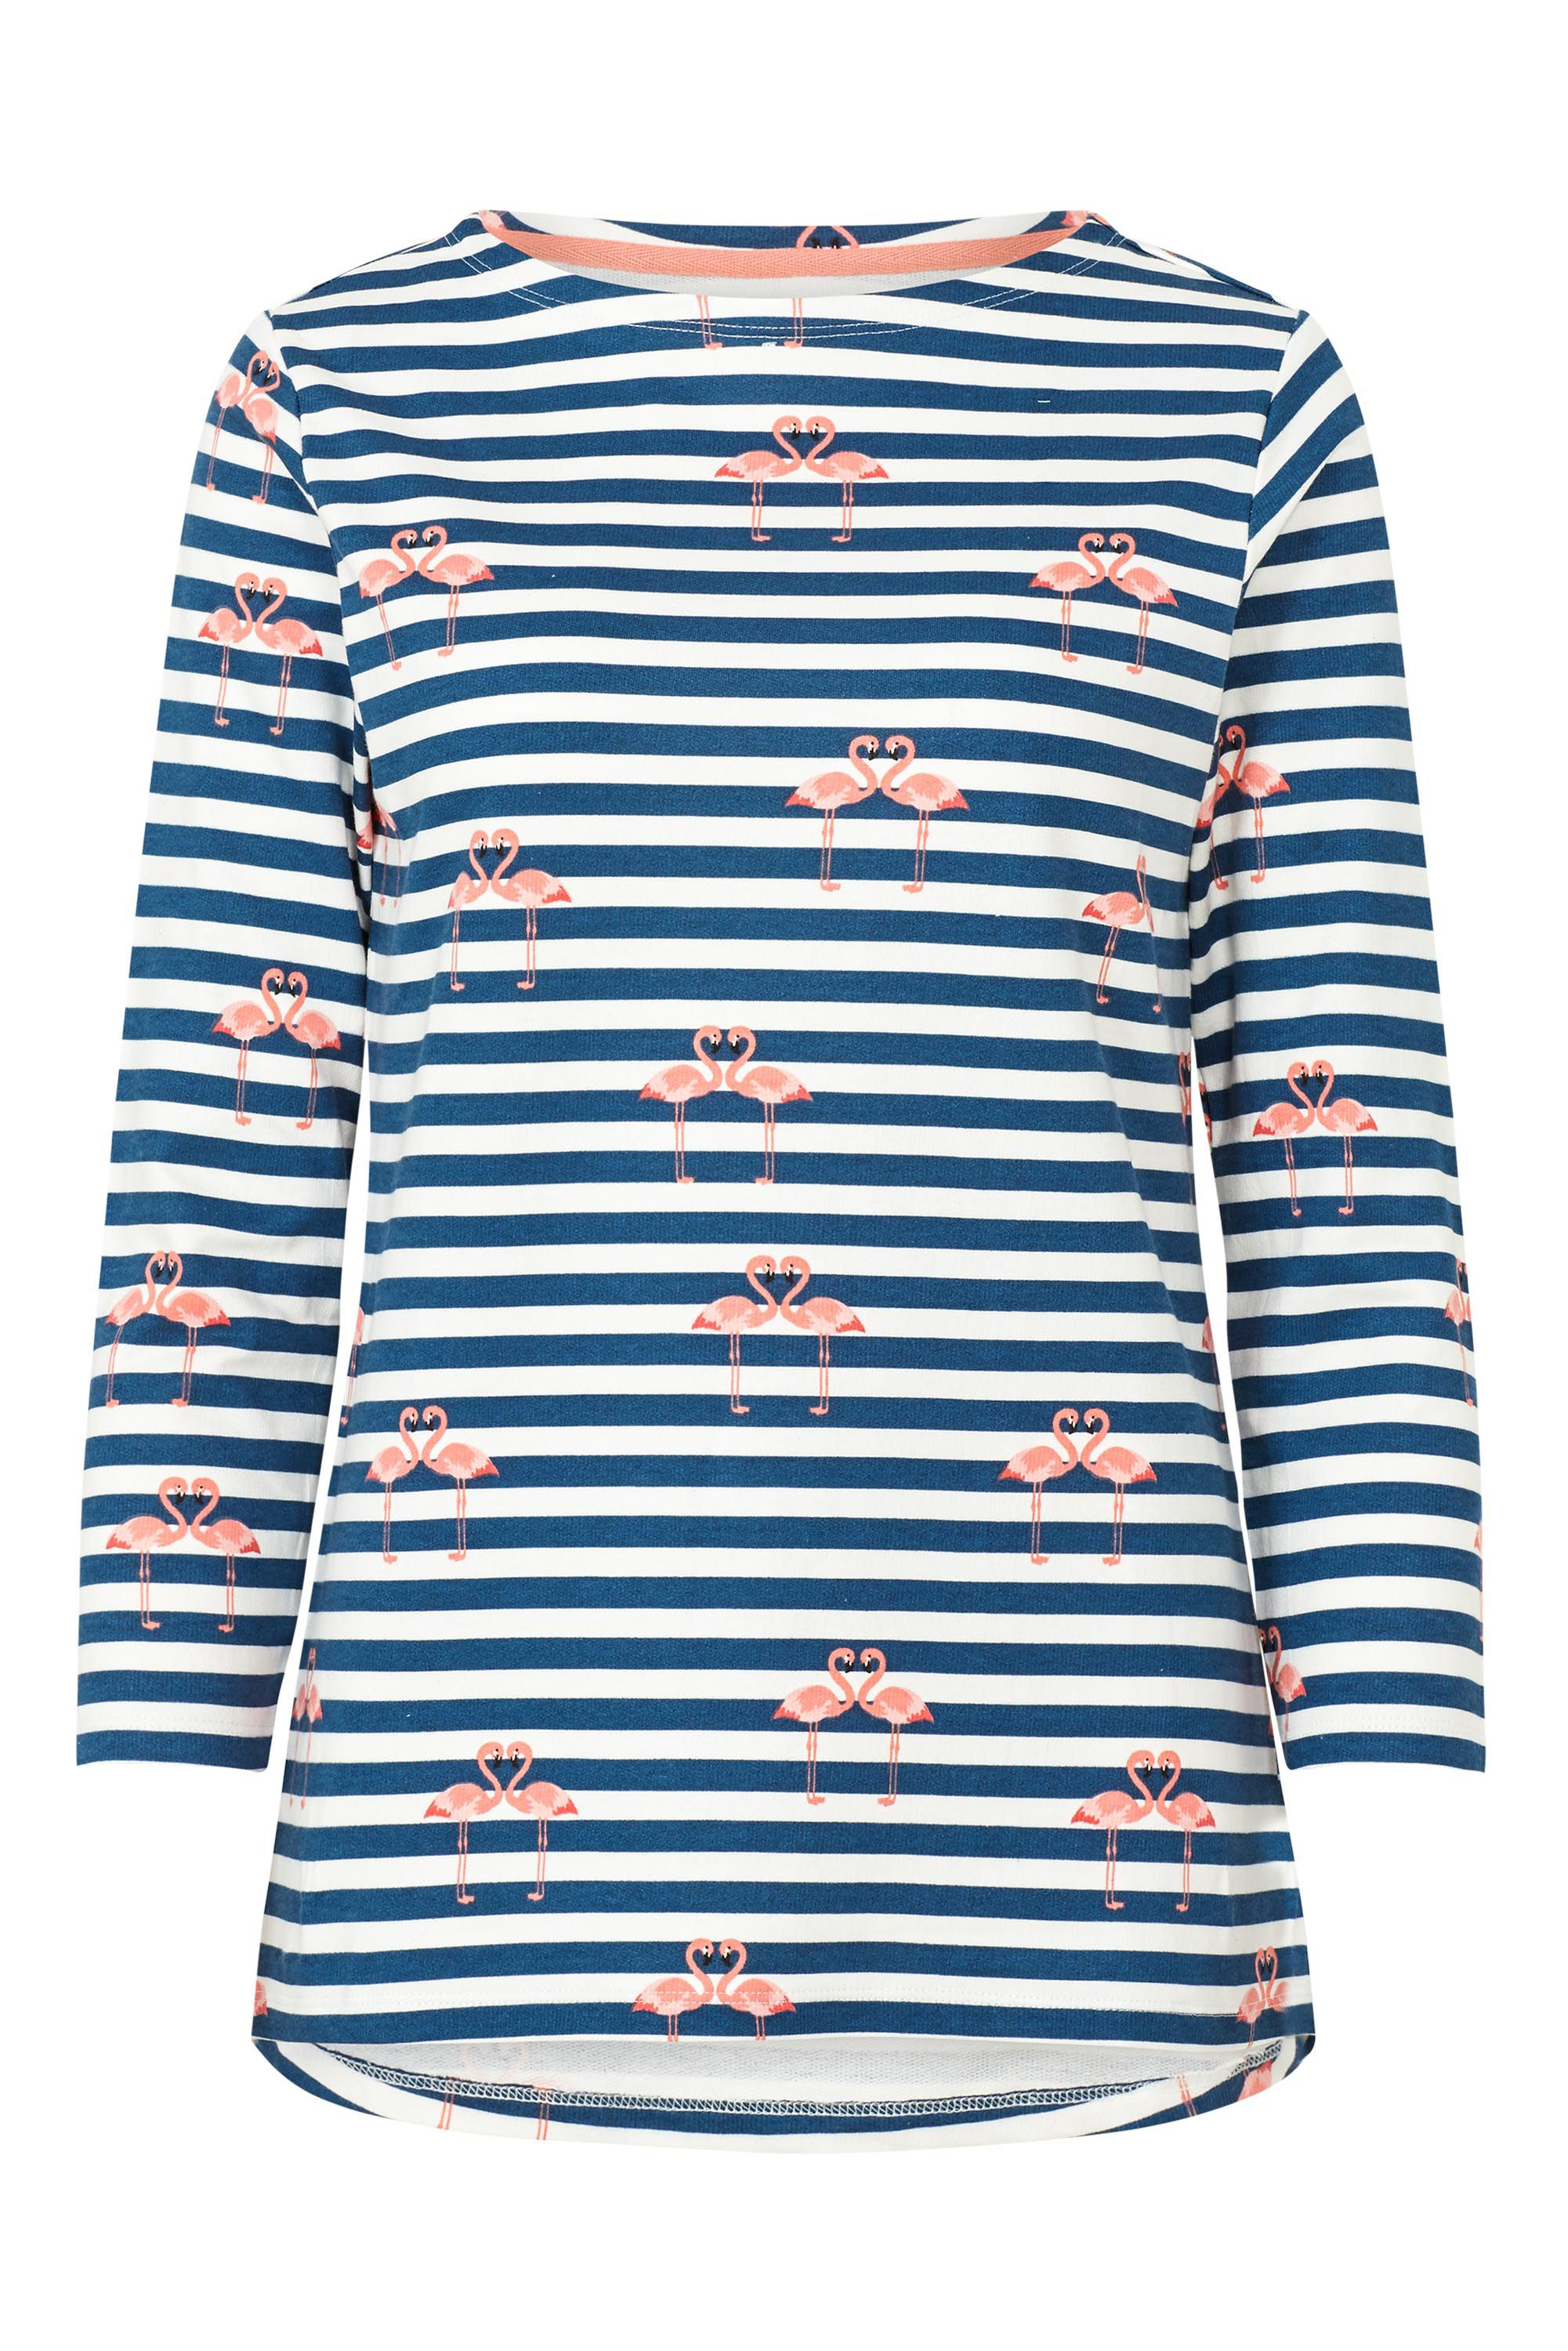 Sugarhill Boutique Brighton Flamingo Stripe Top, White